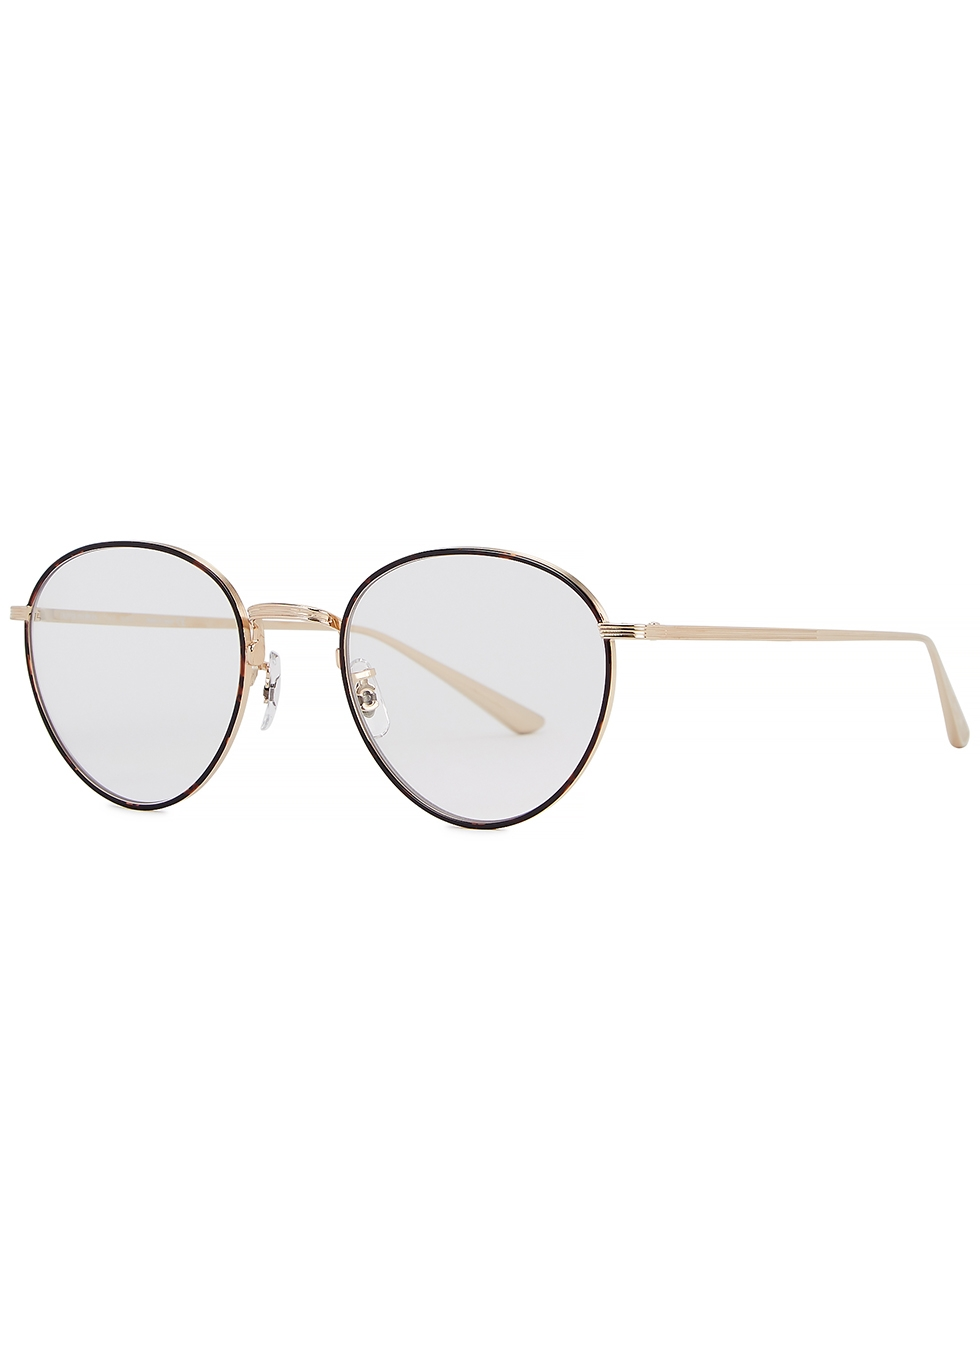 X The Row Brownstone oval-frame optical glasses